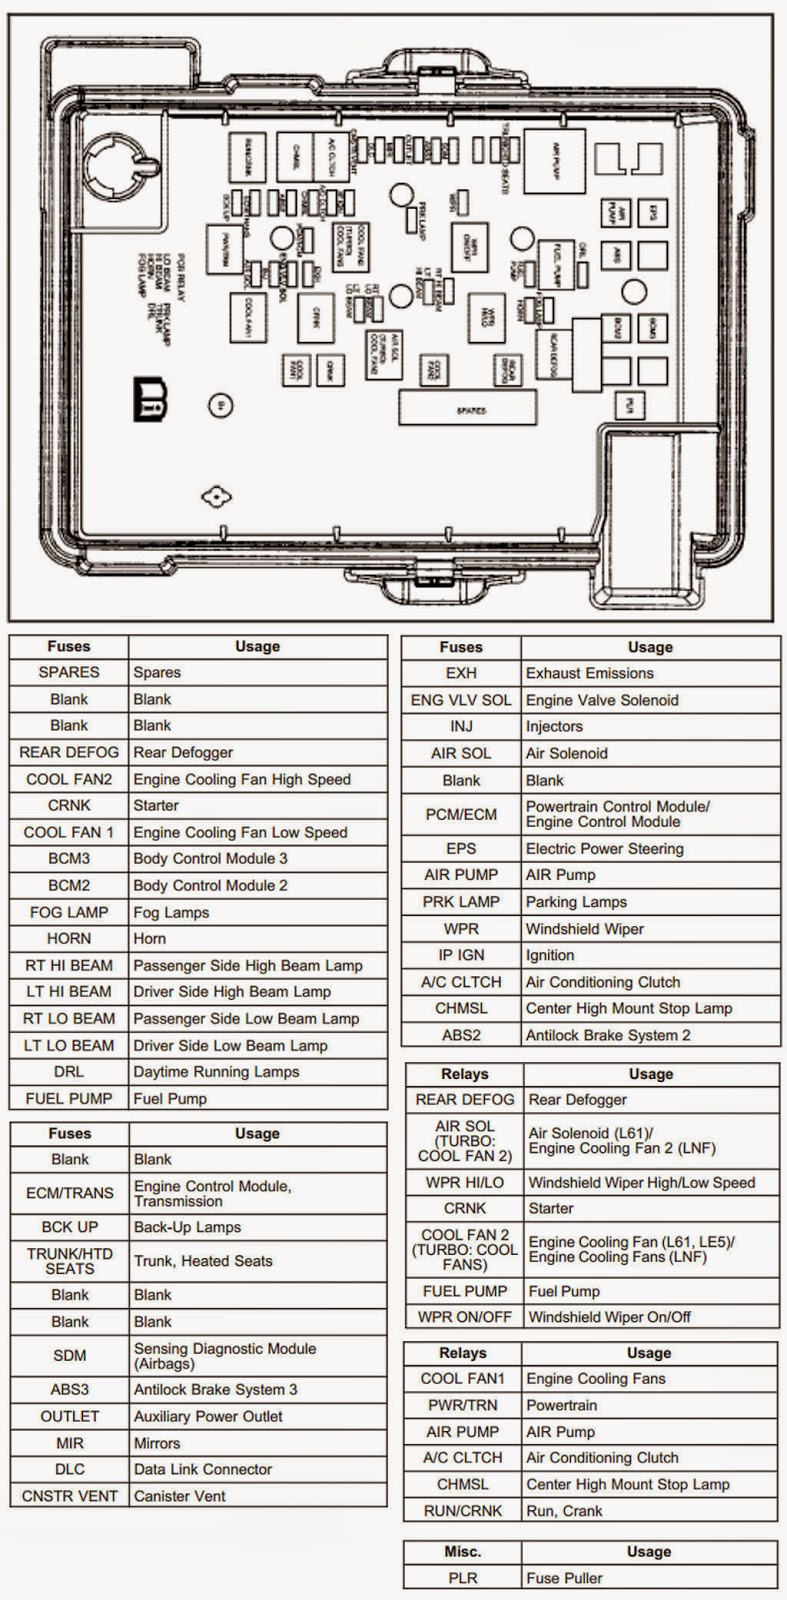 2006 chevy cobalt fuse box diagram wiring diagram list2006 cobalt fuse and relay box automotive wiring [ 787 x 1600 Pixel ]